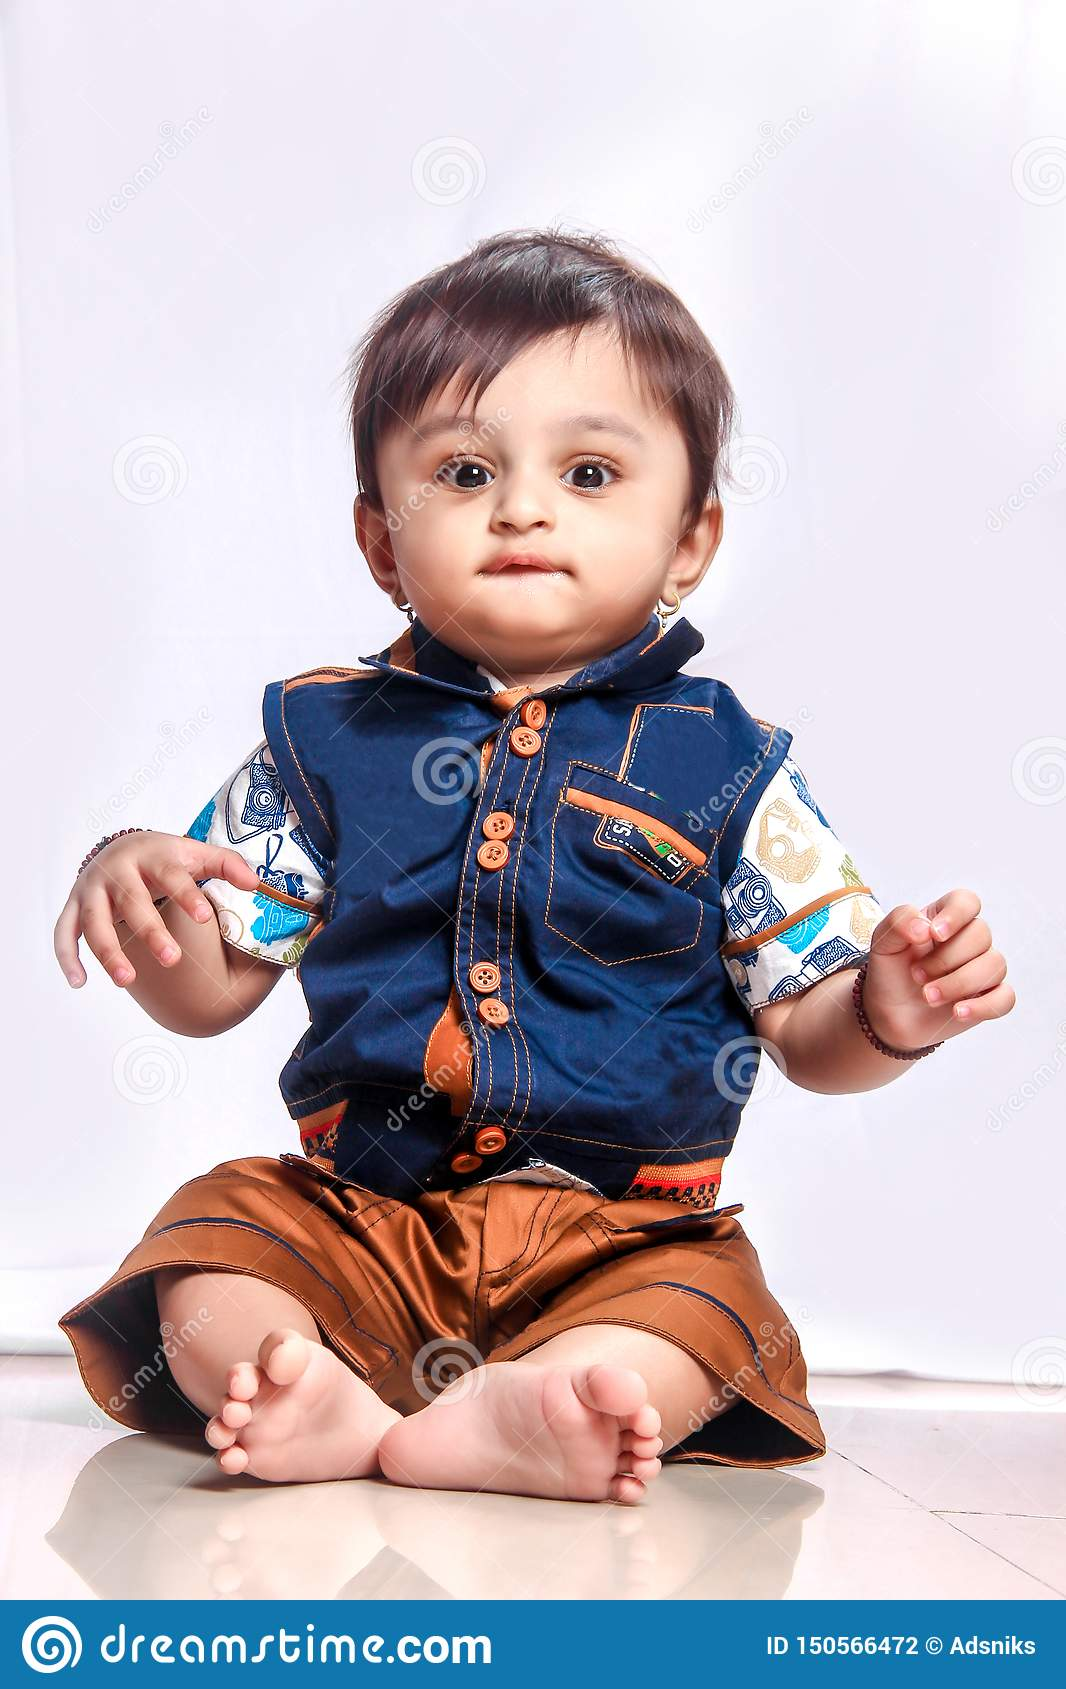 Cute Indian Baby Boy Smiling Stock Photo Image Of Beautiful Grass 150566472